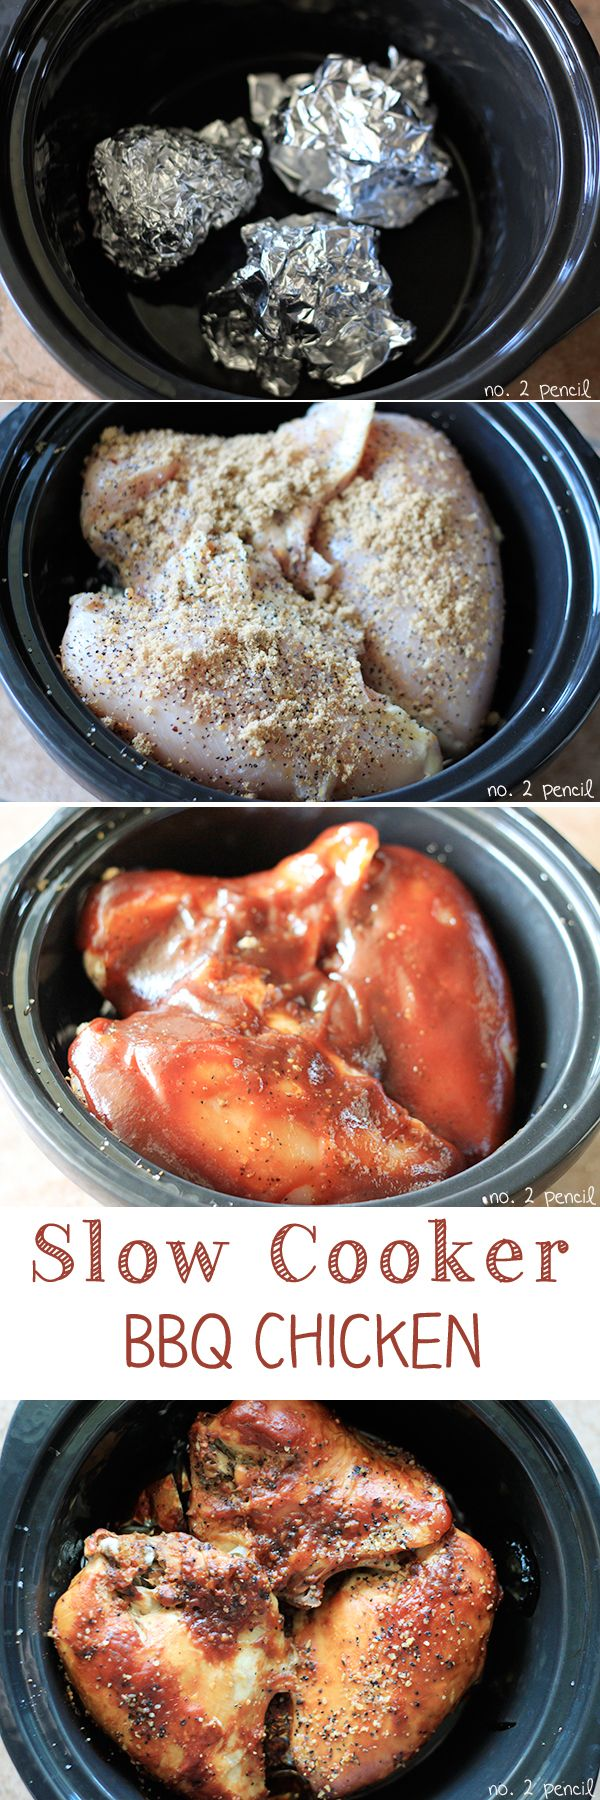 Slow Cooker BBQ Chicken - No. 2 Pencil